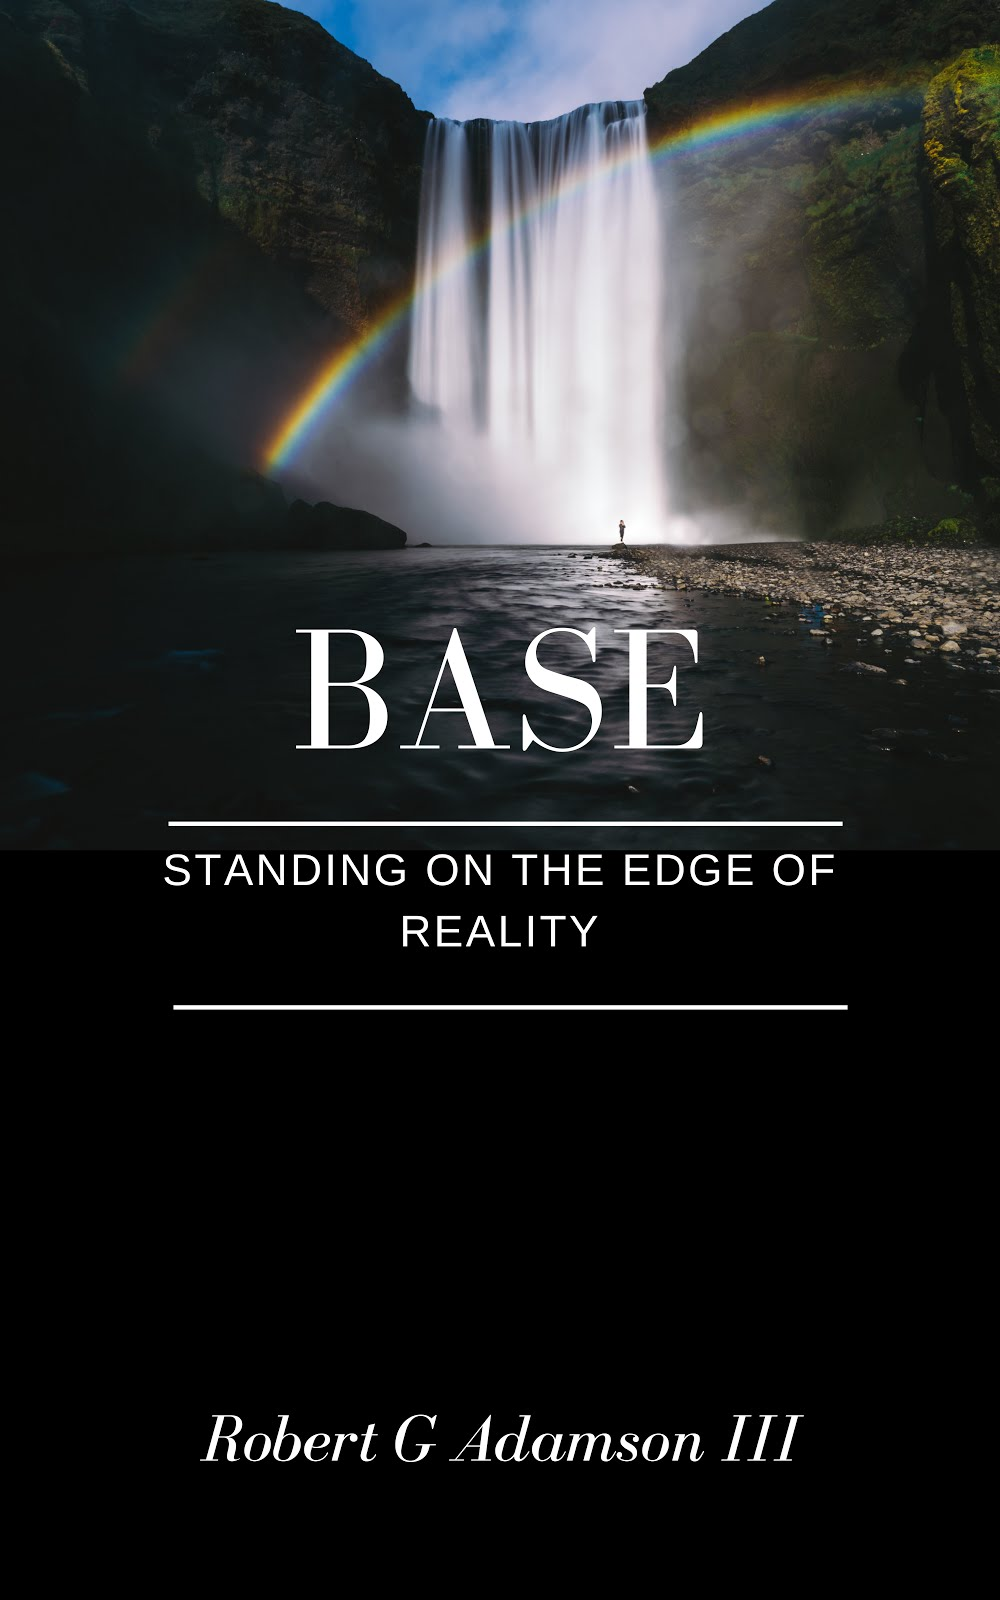 Stride through the Gateless Barrier beyond #BaseReality